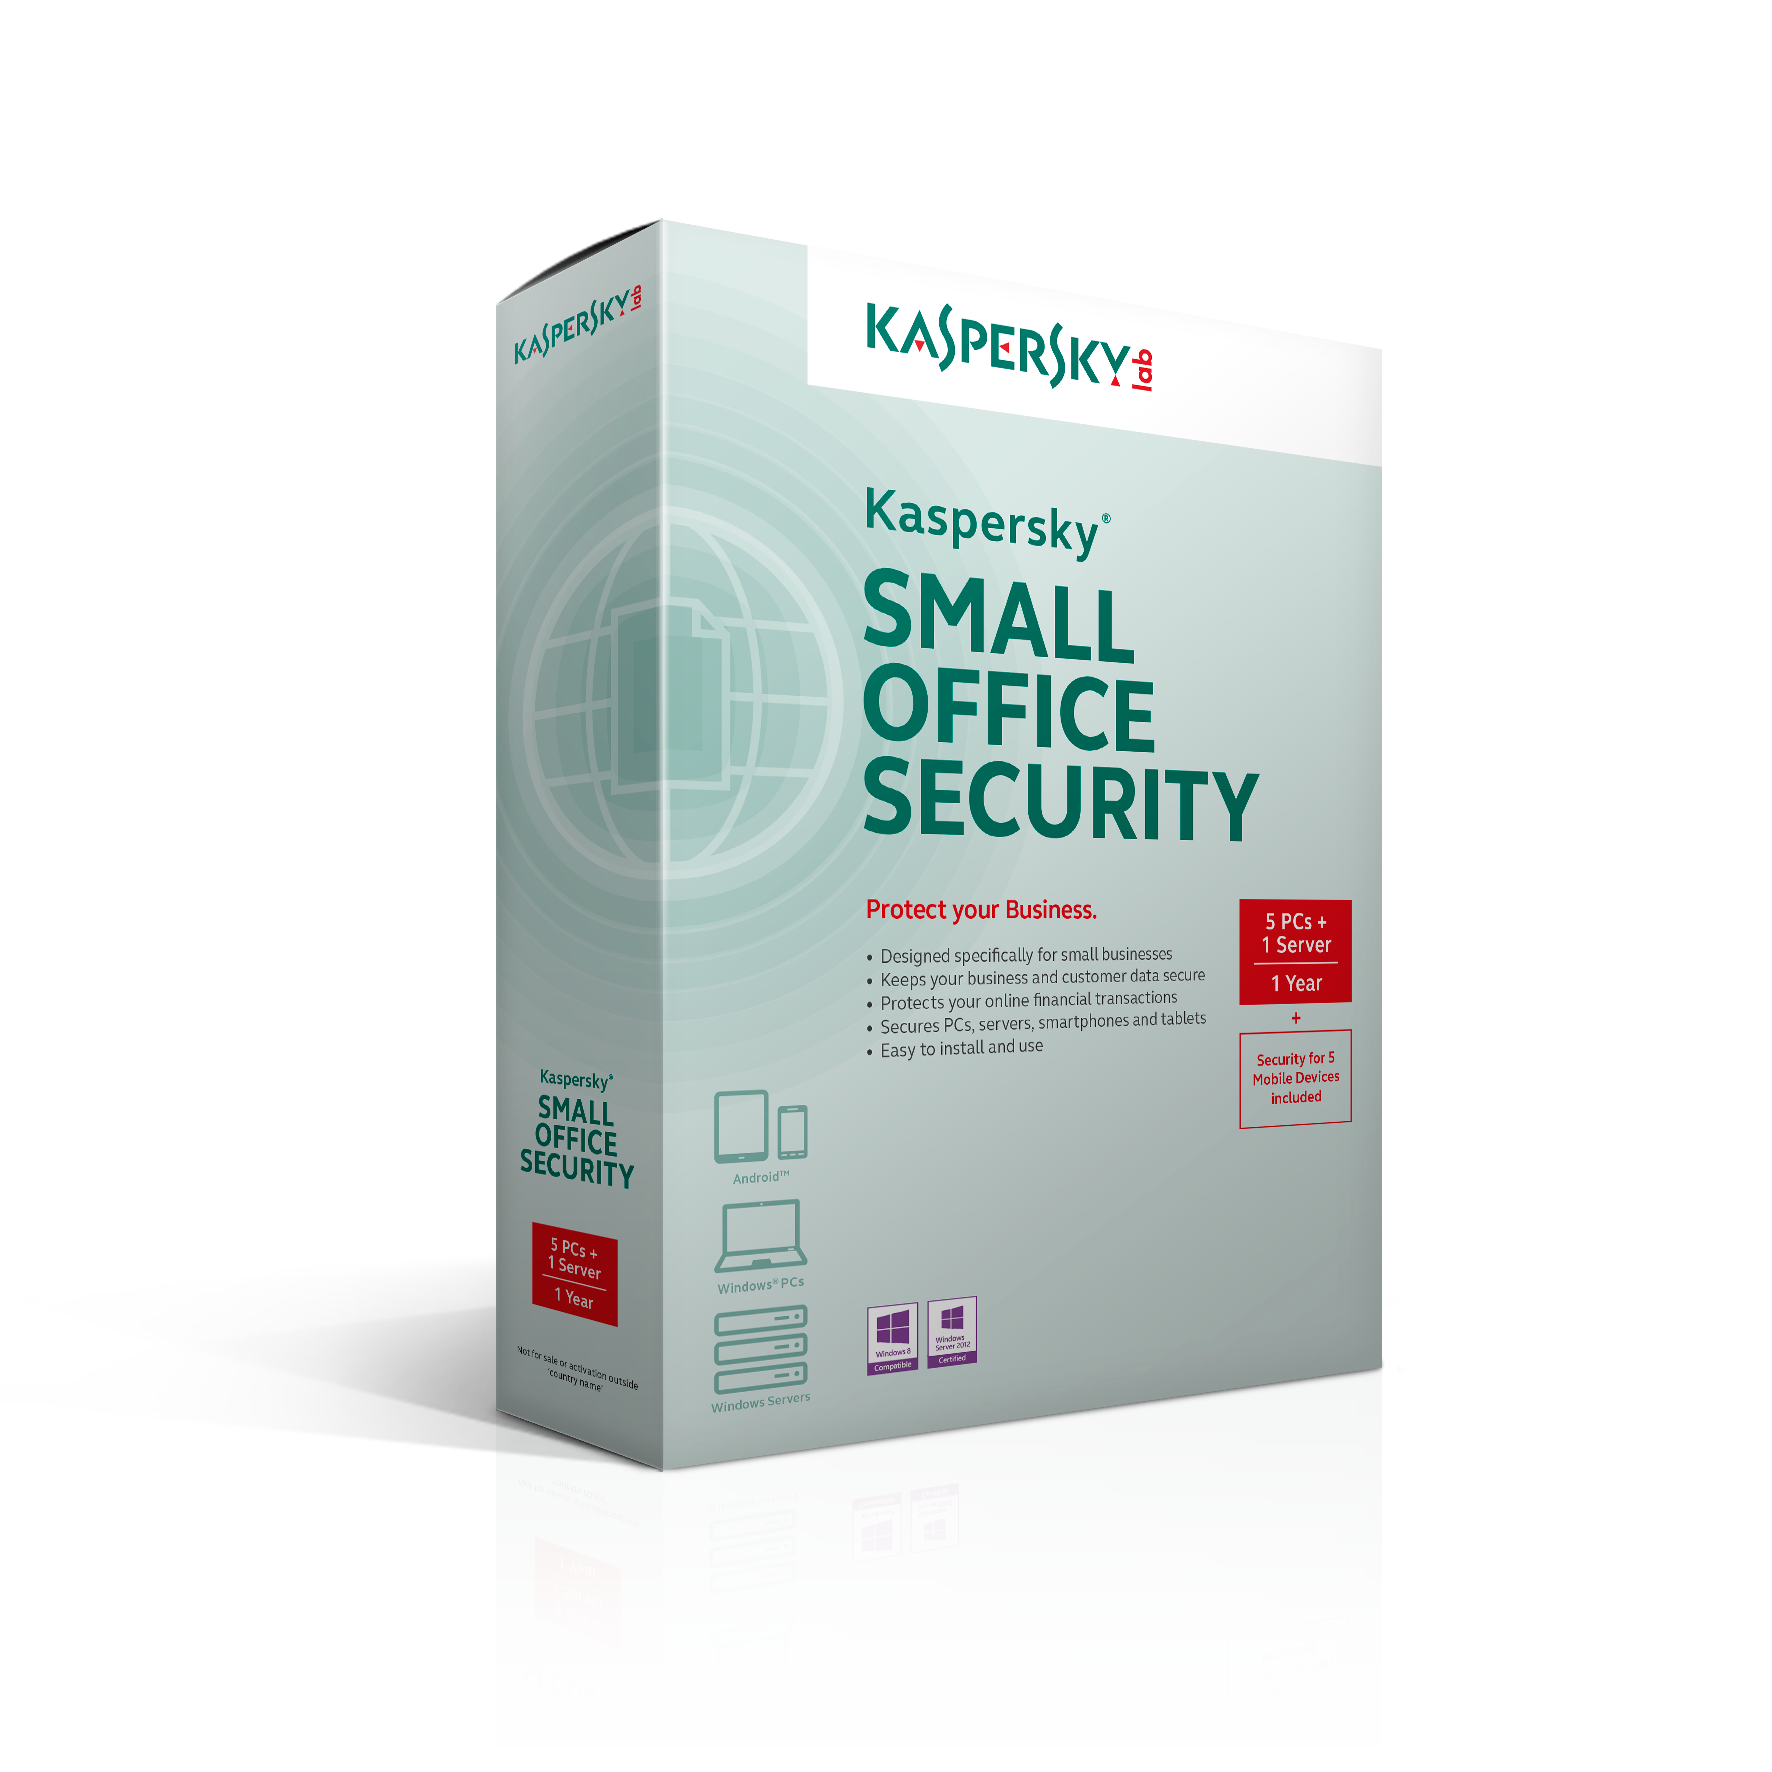 kaspersky small office security review